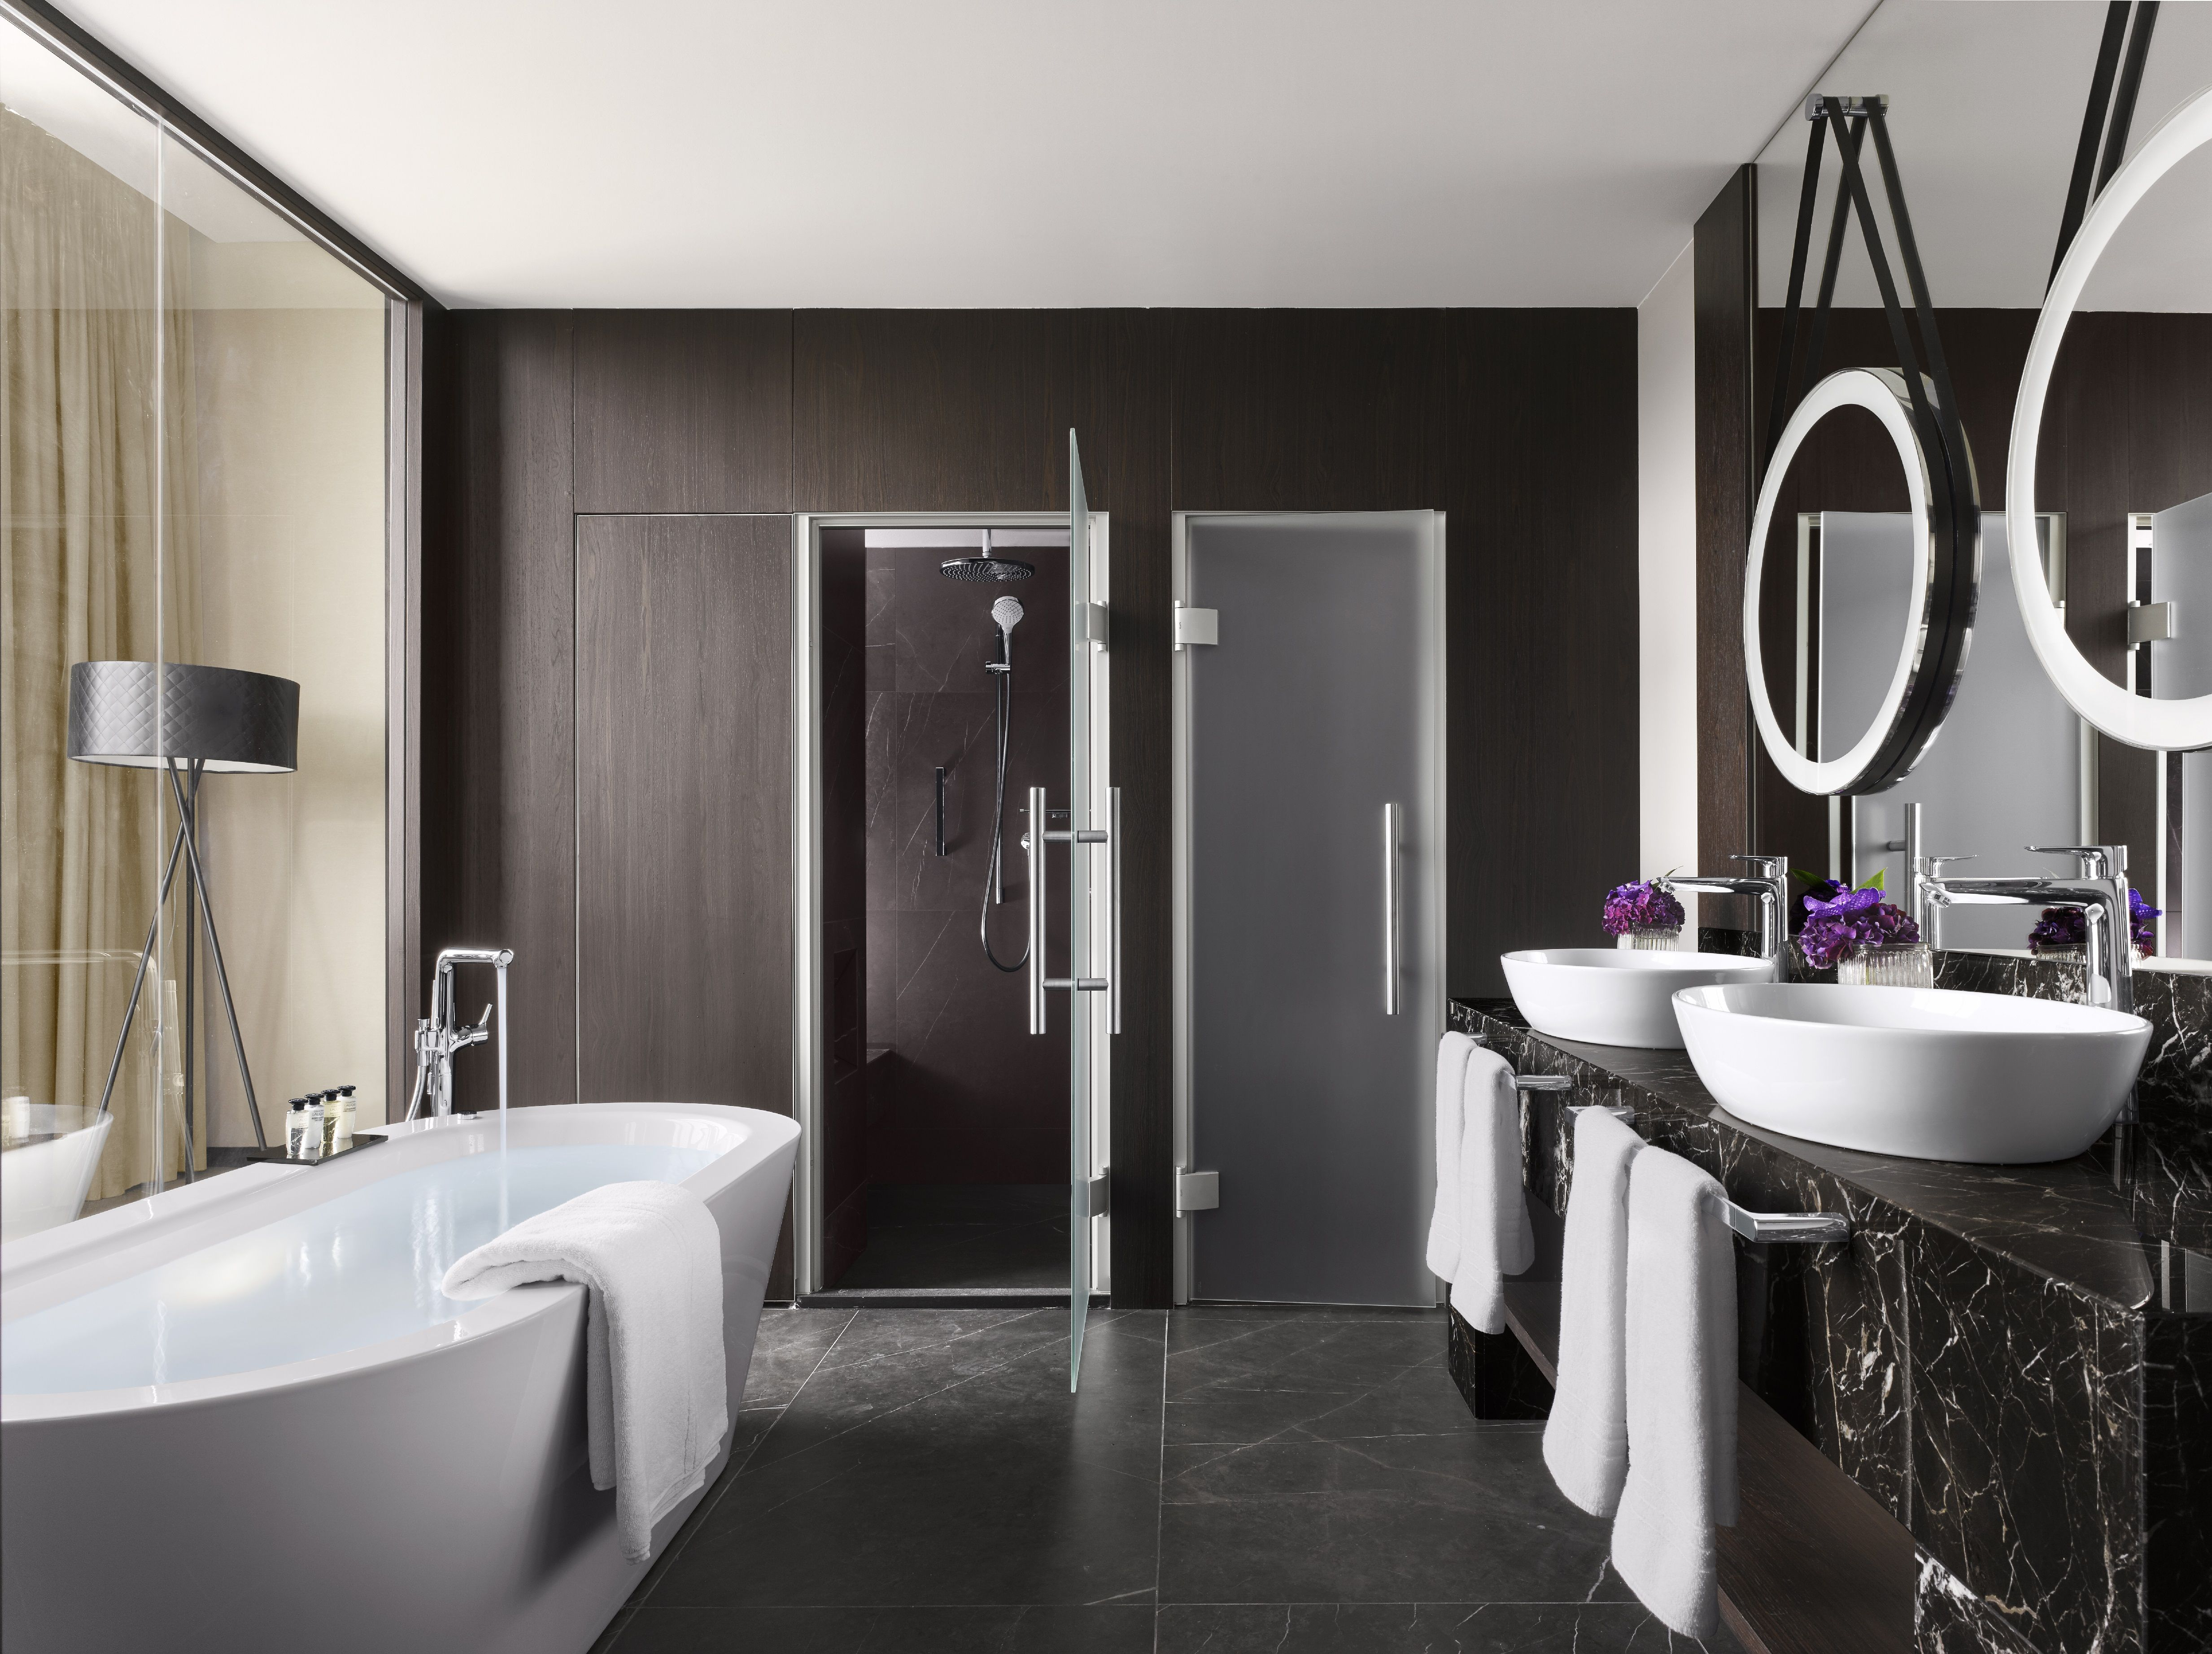 Modern bath mixers for comfort at all levels: hansgrohe Talis ...